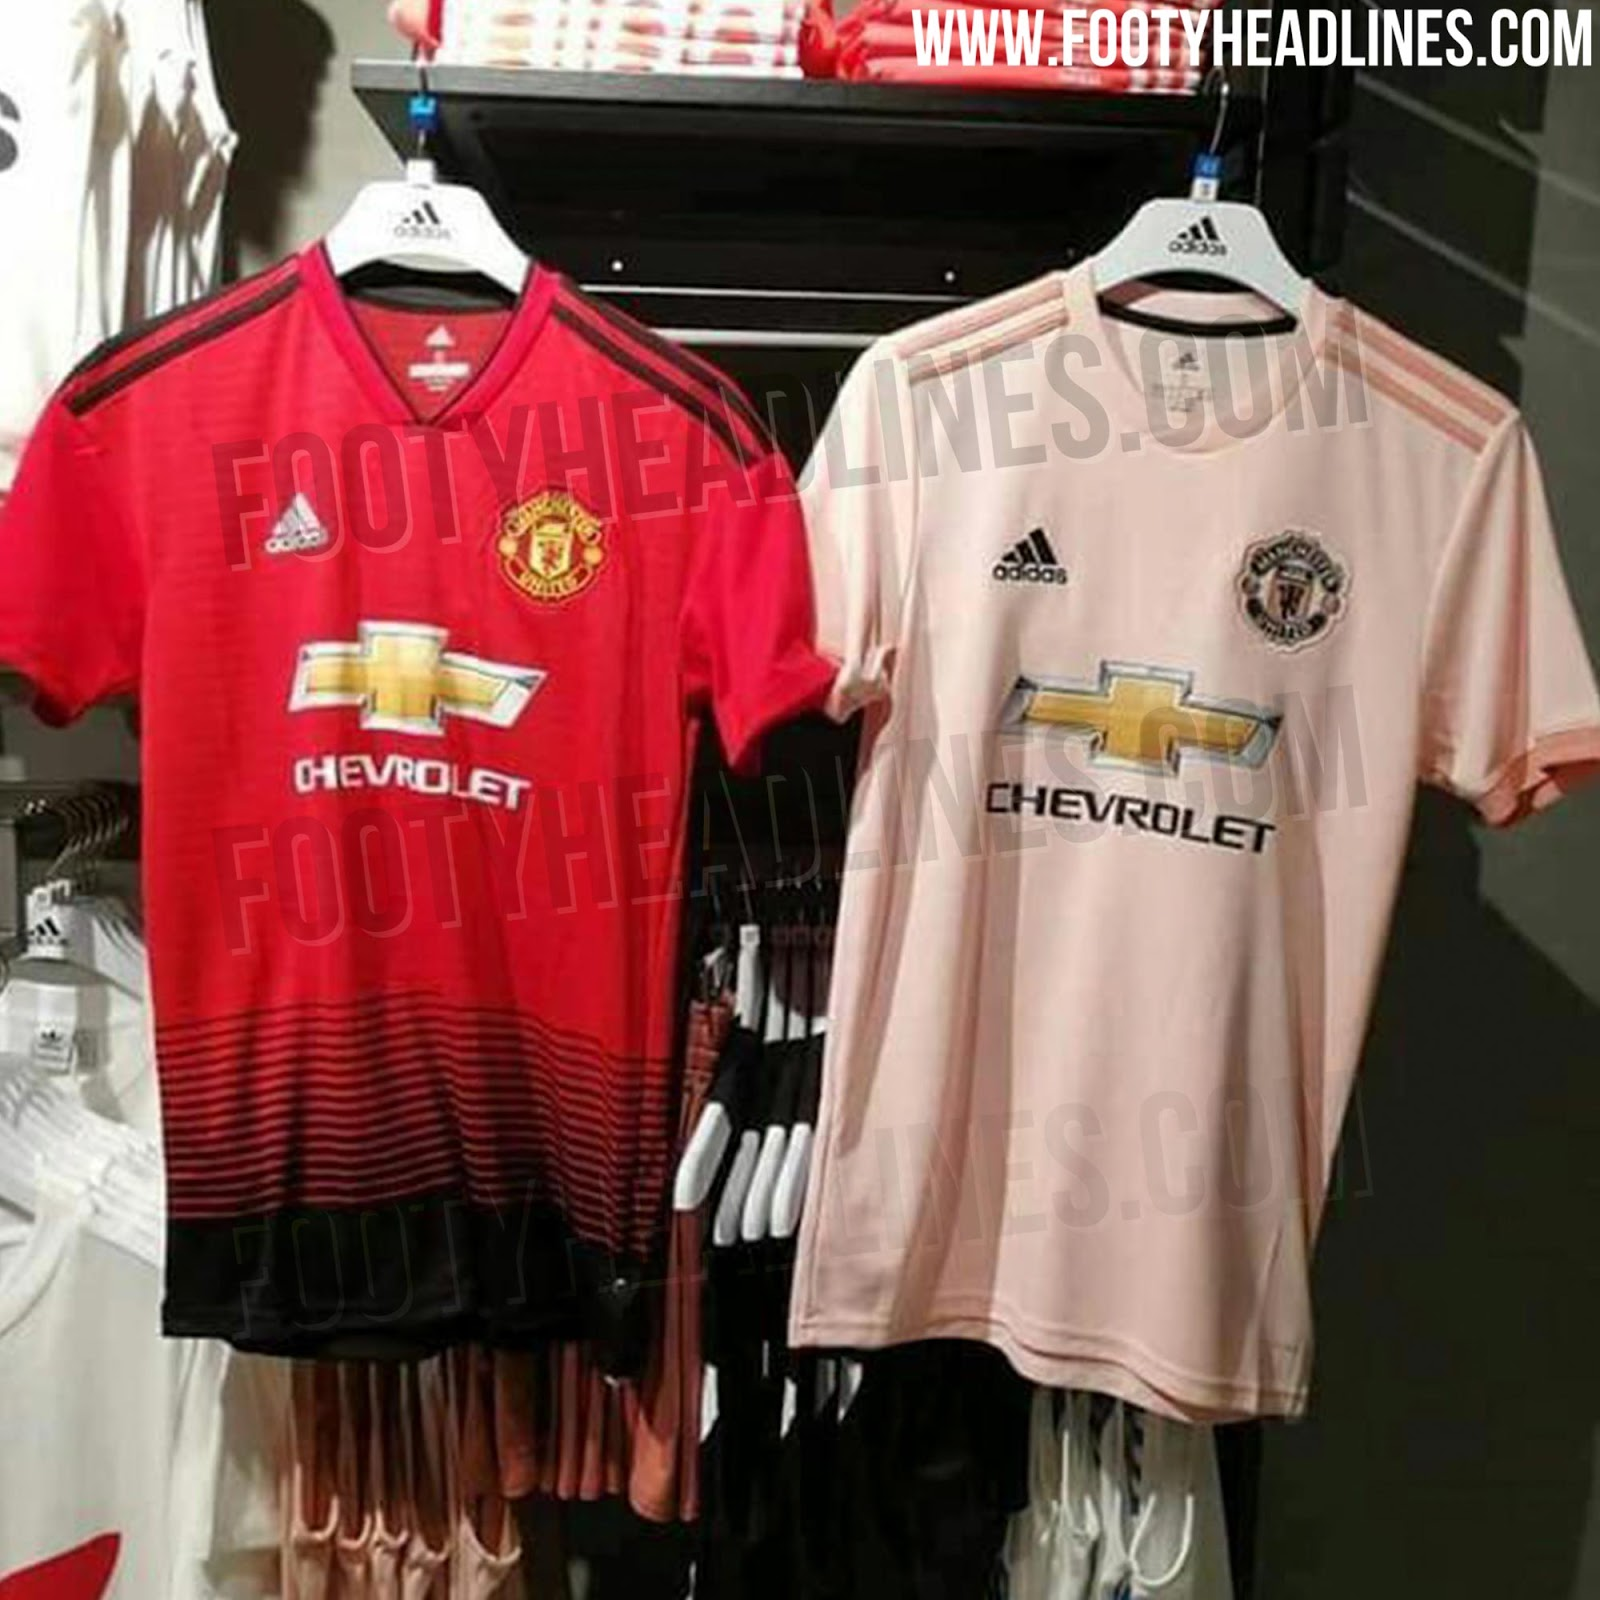 release date 6bf46 91bf0 PICS: Manchester United's new pink away shirt has been ...